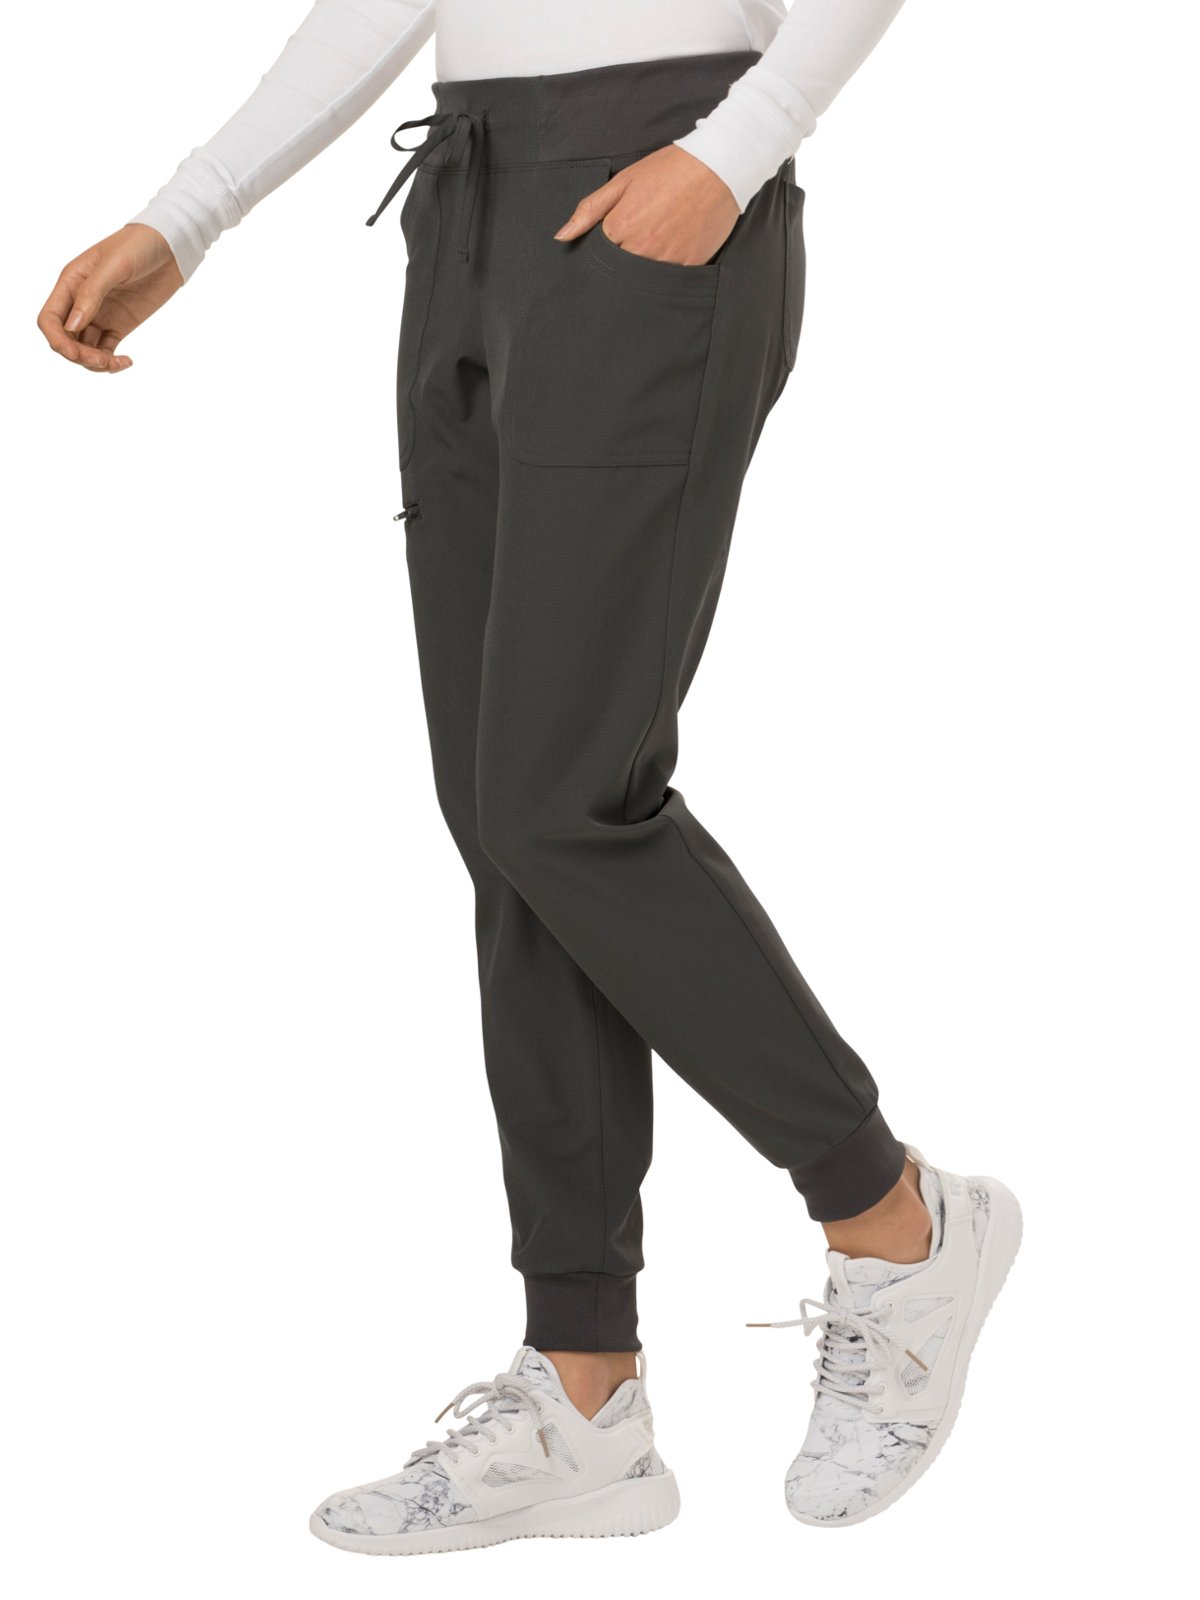 HeartSoul Break On Through Women's The Jogger Low Rise Tapered Leg Scrub Pant Small Pewter